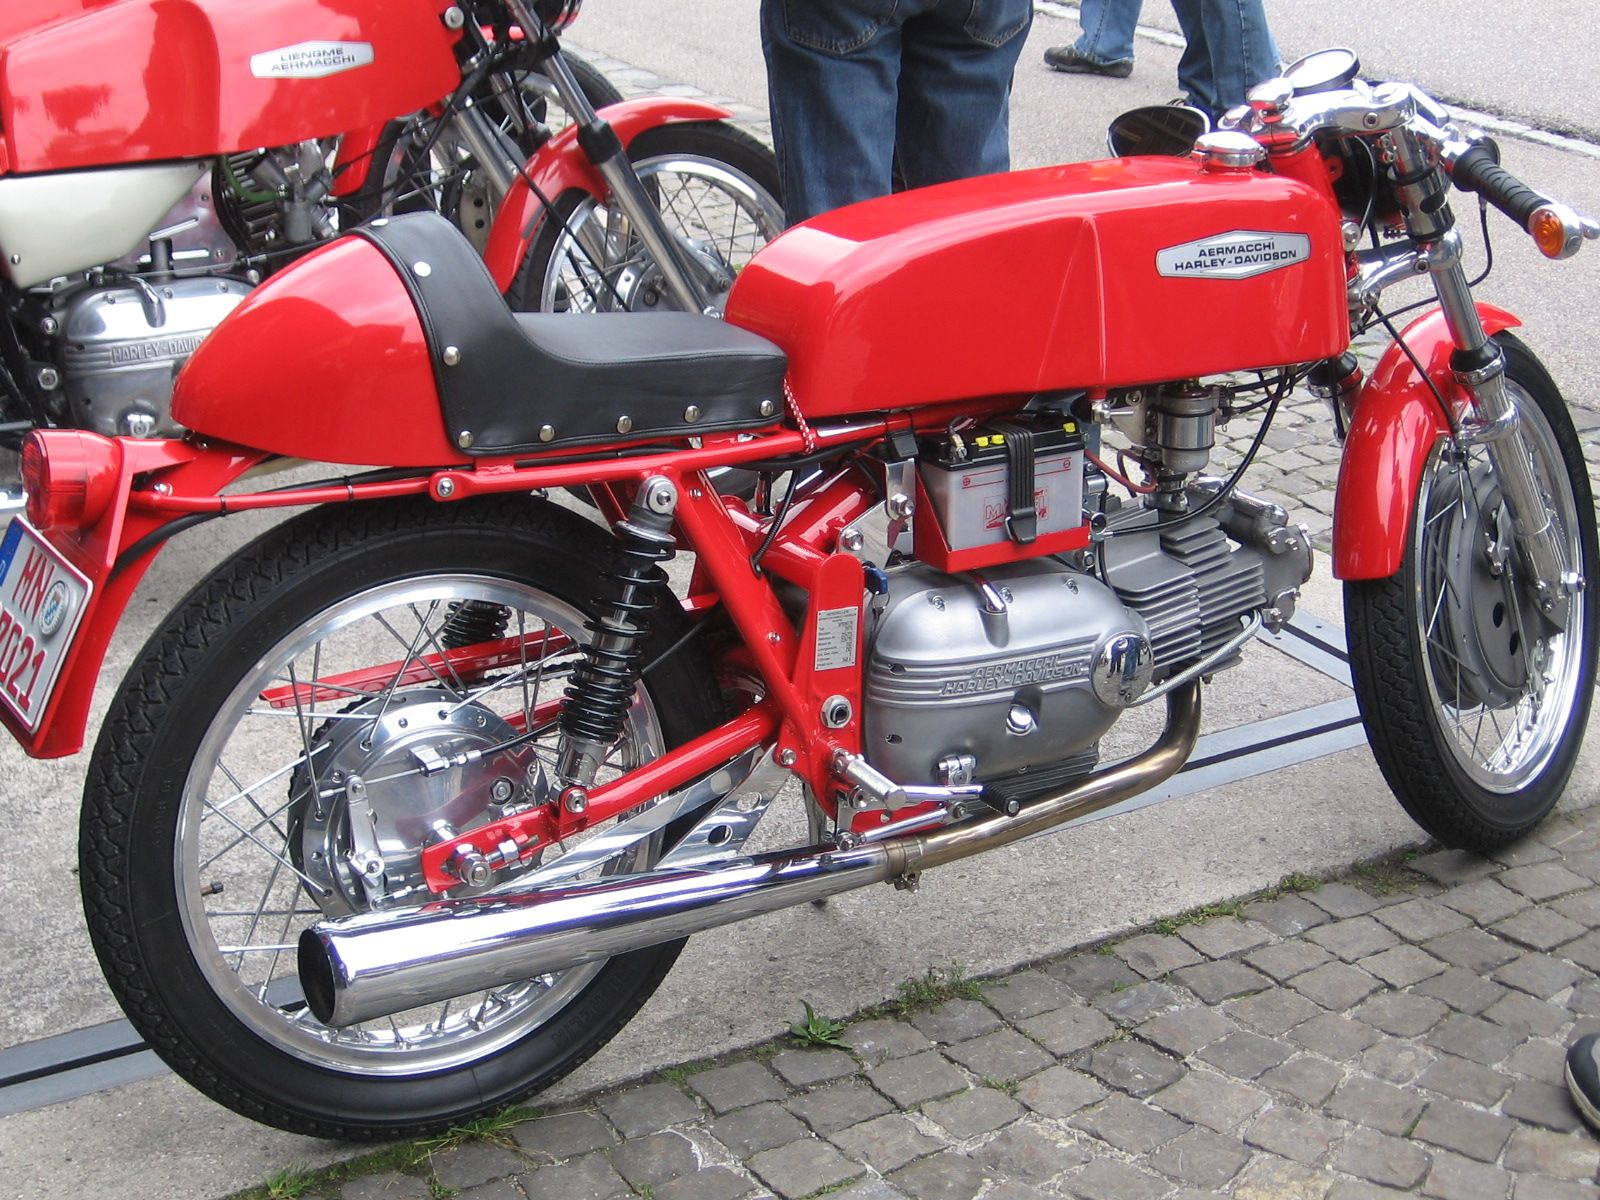 aermacchi | Motorcycle Photo Of The Day